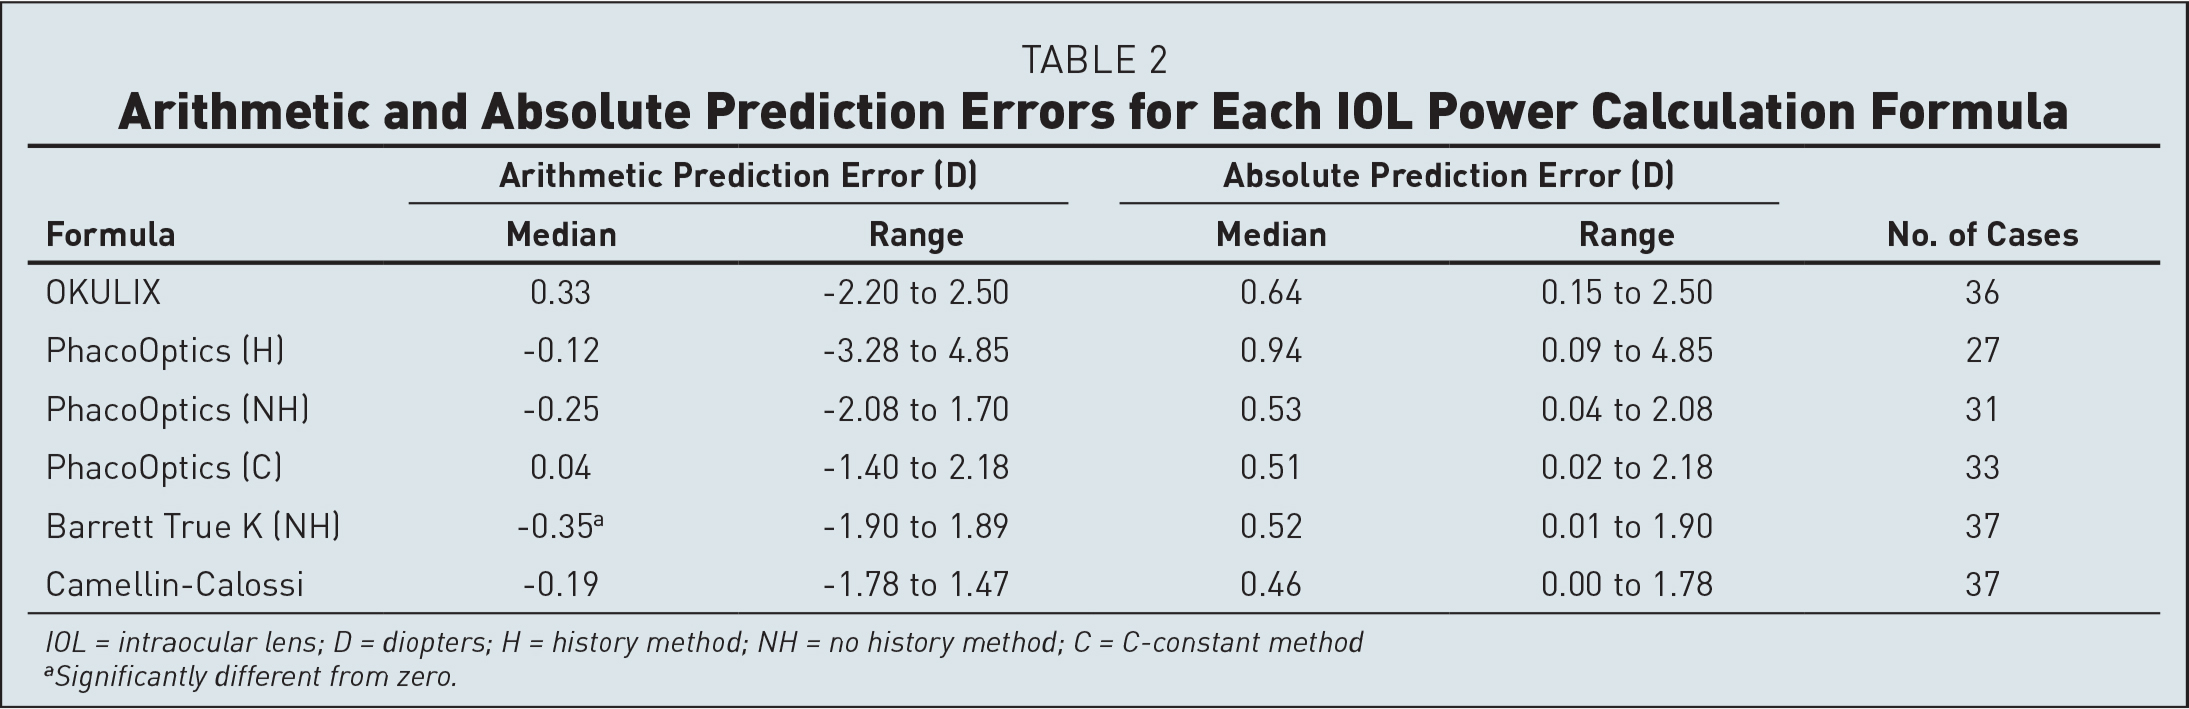 Arithmetic and Absolute Prediction Errors for Each IOL Power Calculation Formula